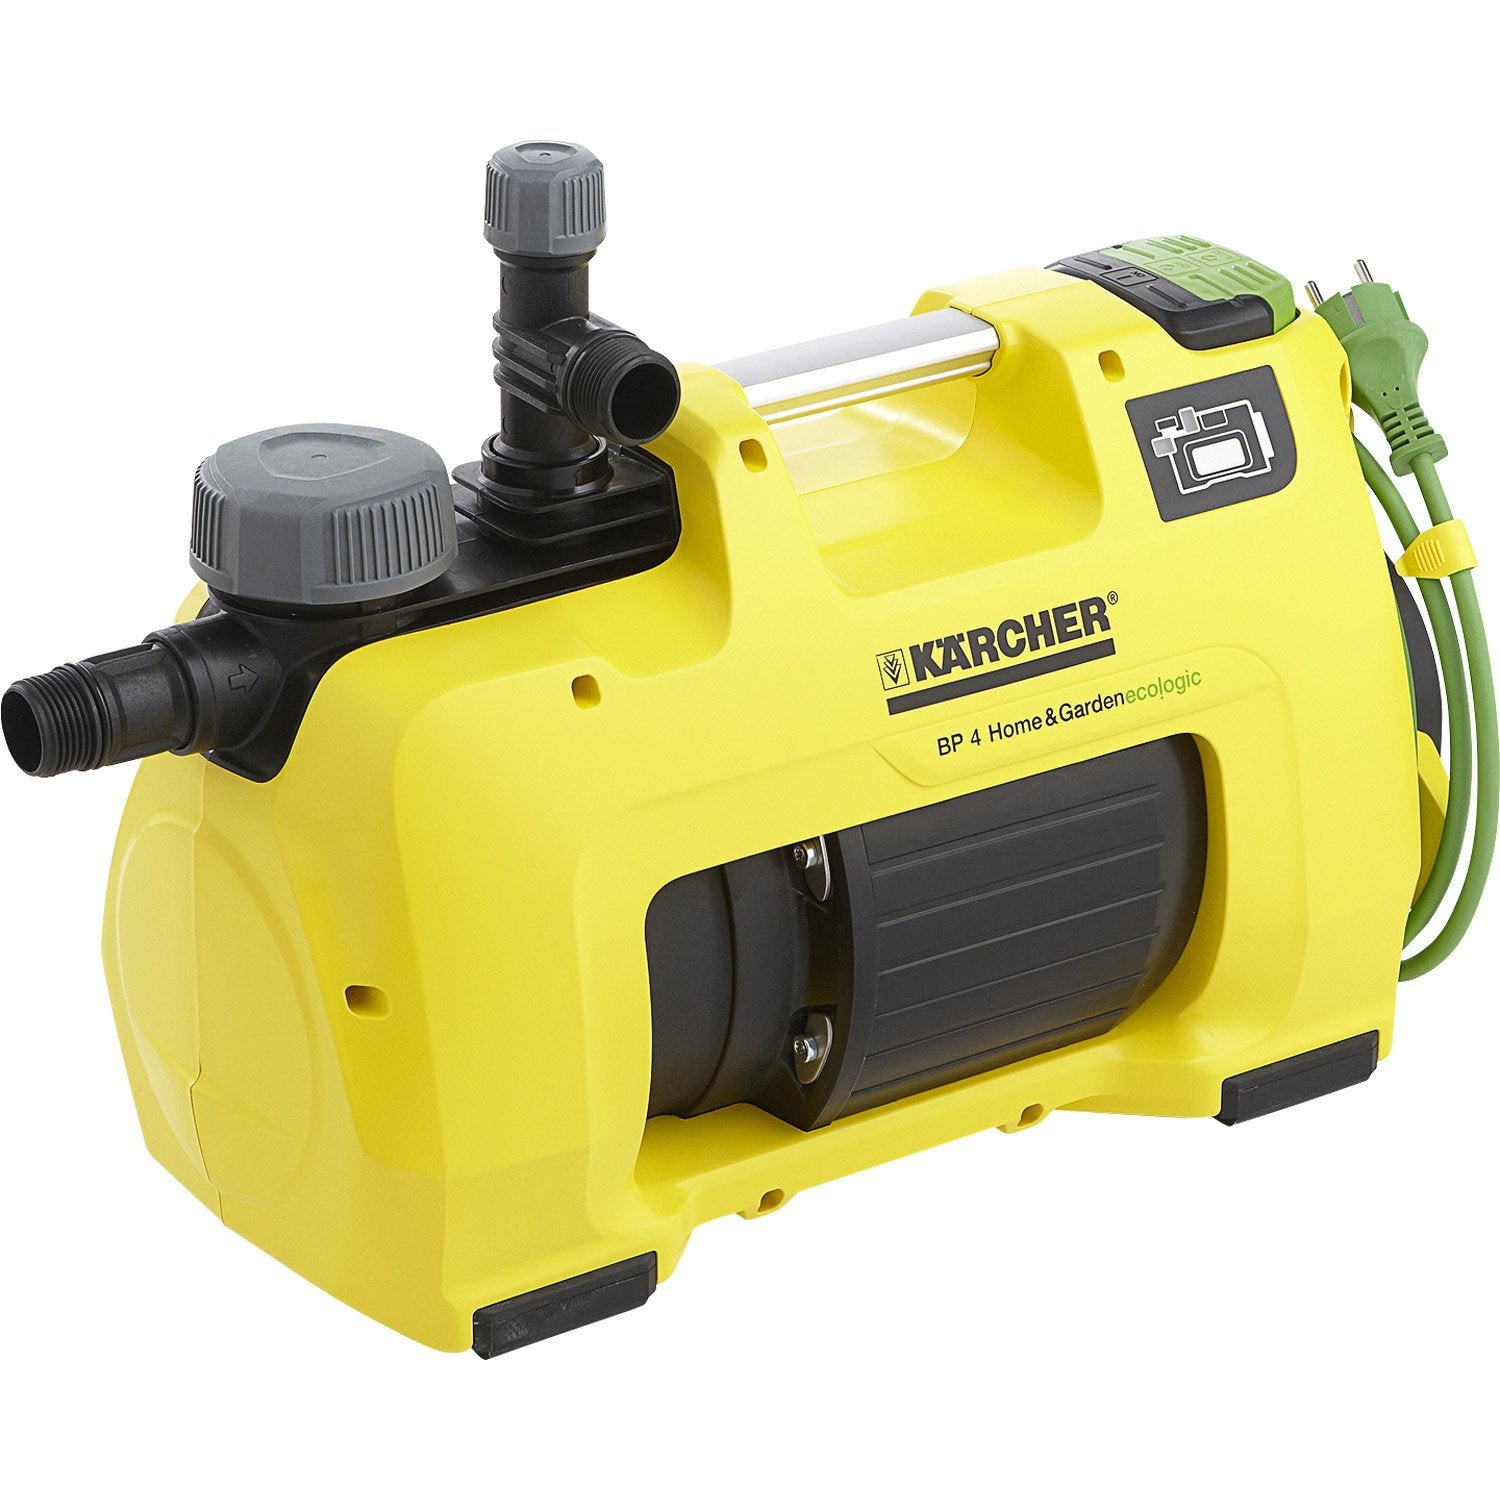 Pompe arrosage automatique karcher bp4 home and garden - Pompe avec surpresseur ...